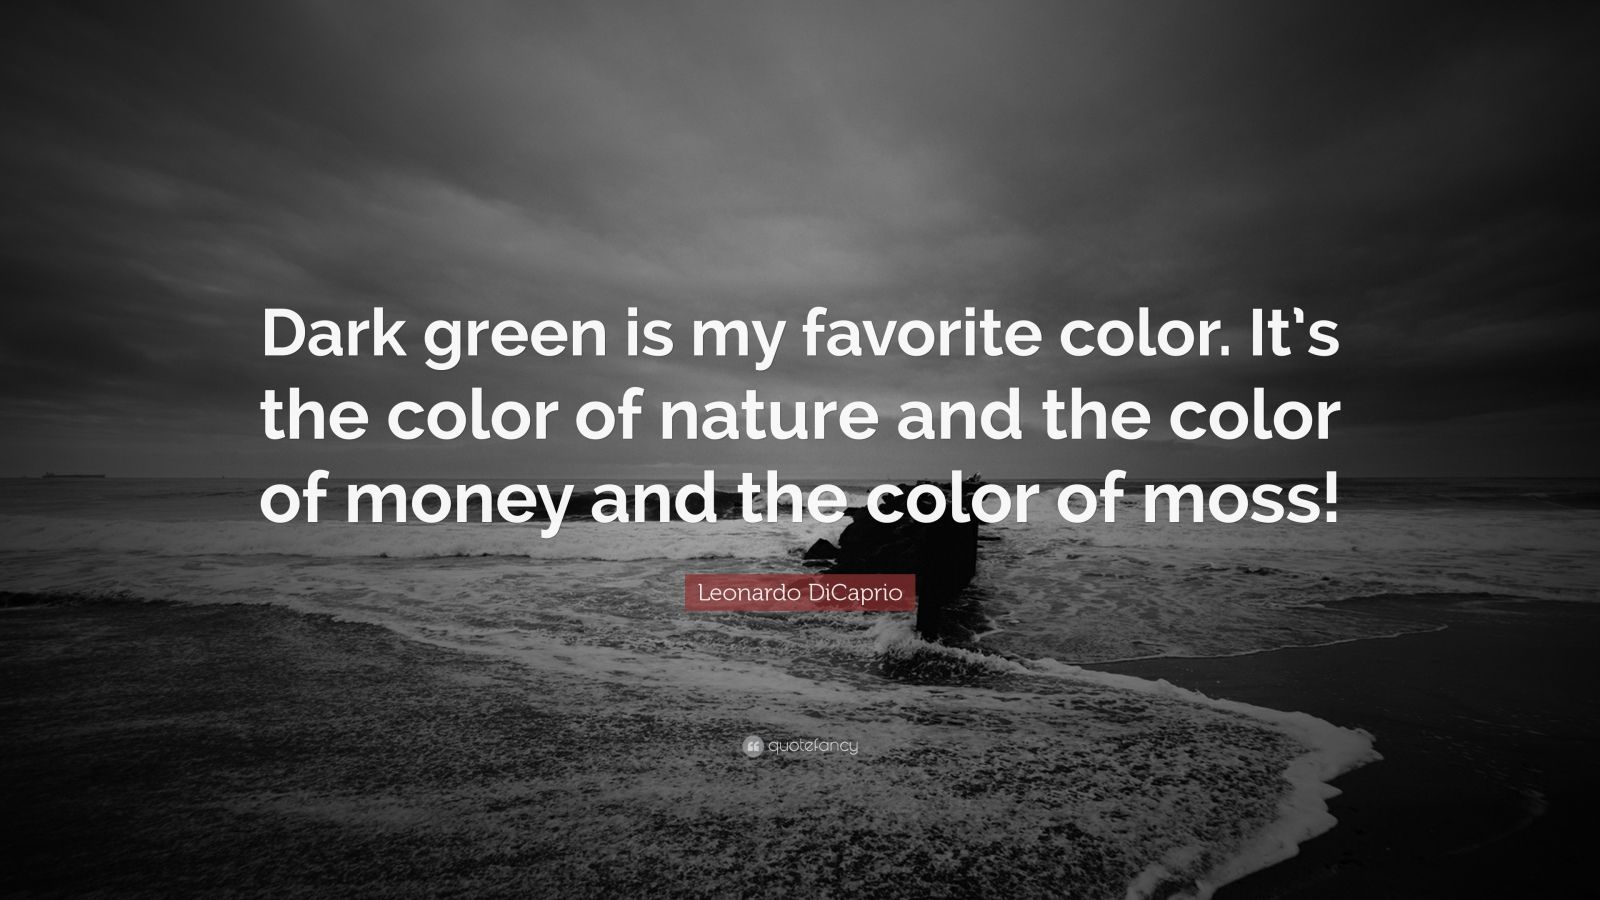 """Leonardo DiCaprio Quote: """"Dark green is my favorite color. It's the color of nature and the color of money and the color of moss!"""""""